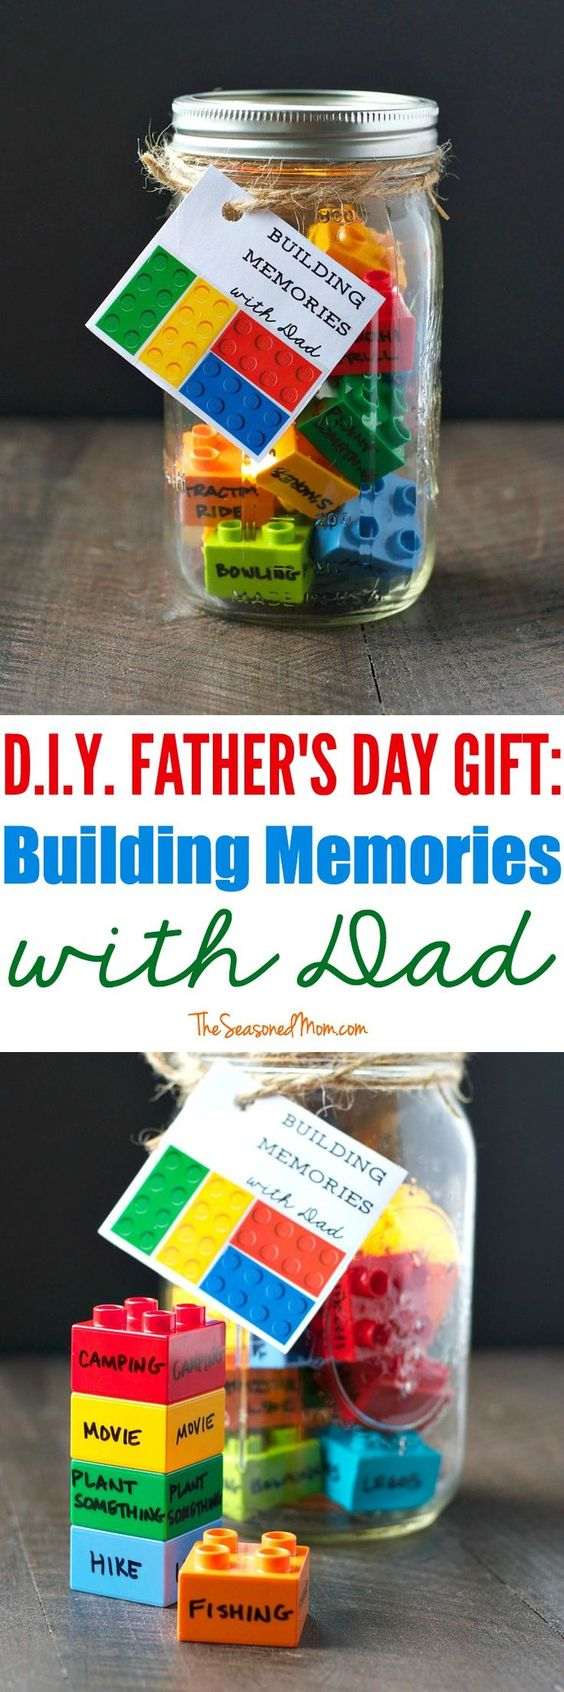 Nothing beats a homemade gift from the heart! Enjoy quality time together and create an easy DIY Father's Day Gift that will build memories to last a lifetime! /horizonorganic/ #ad HorizonOrganic #HorizonSnacks: